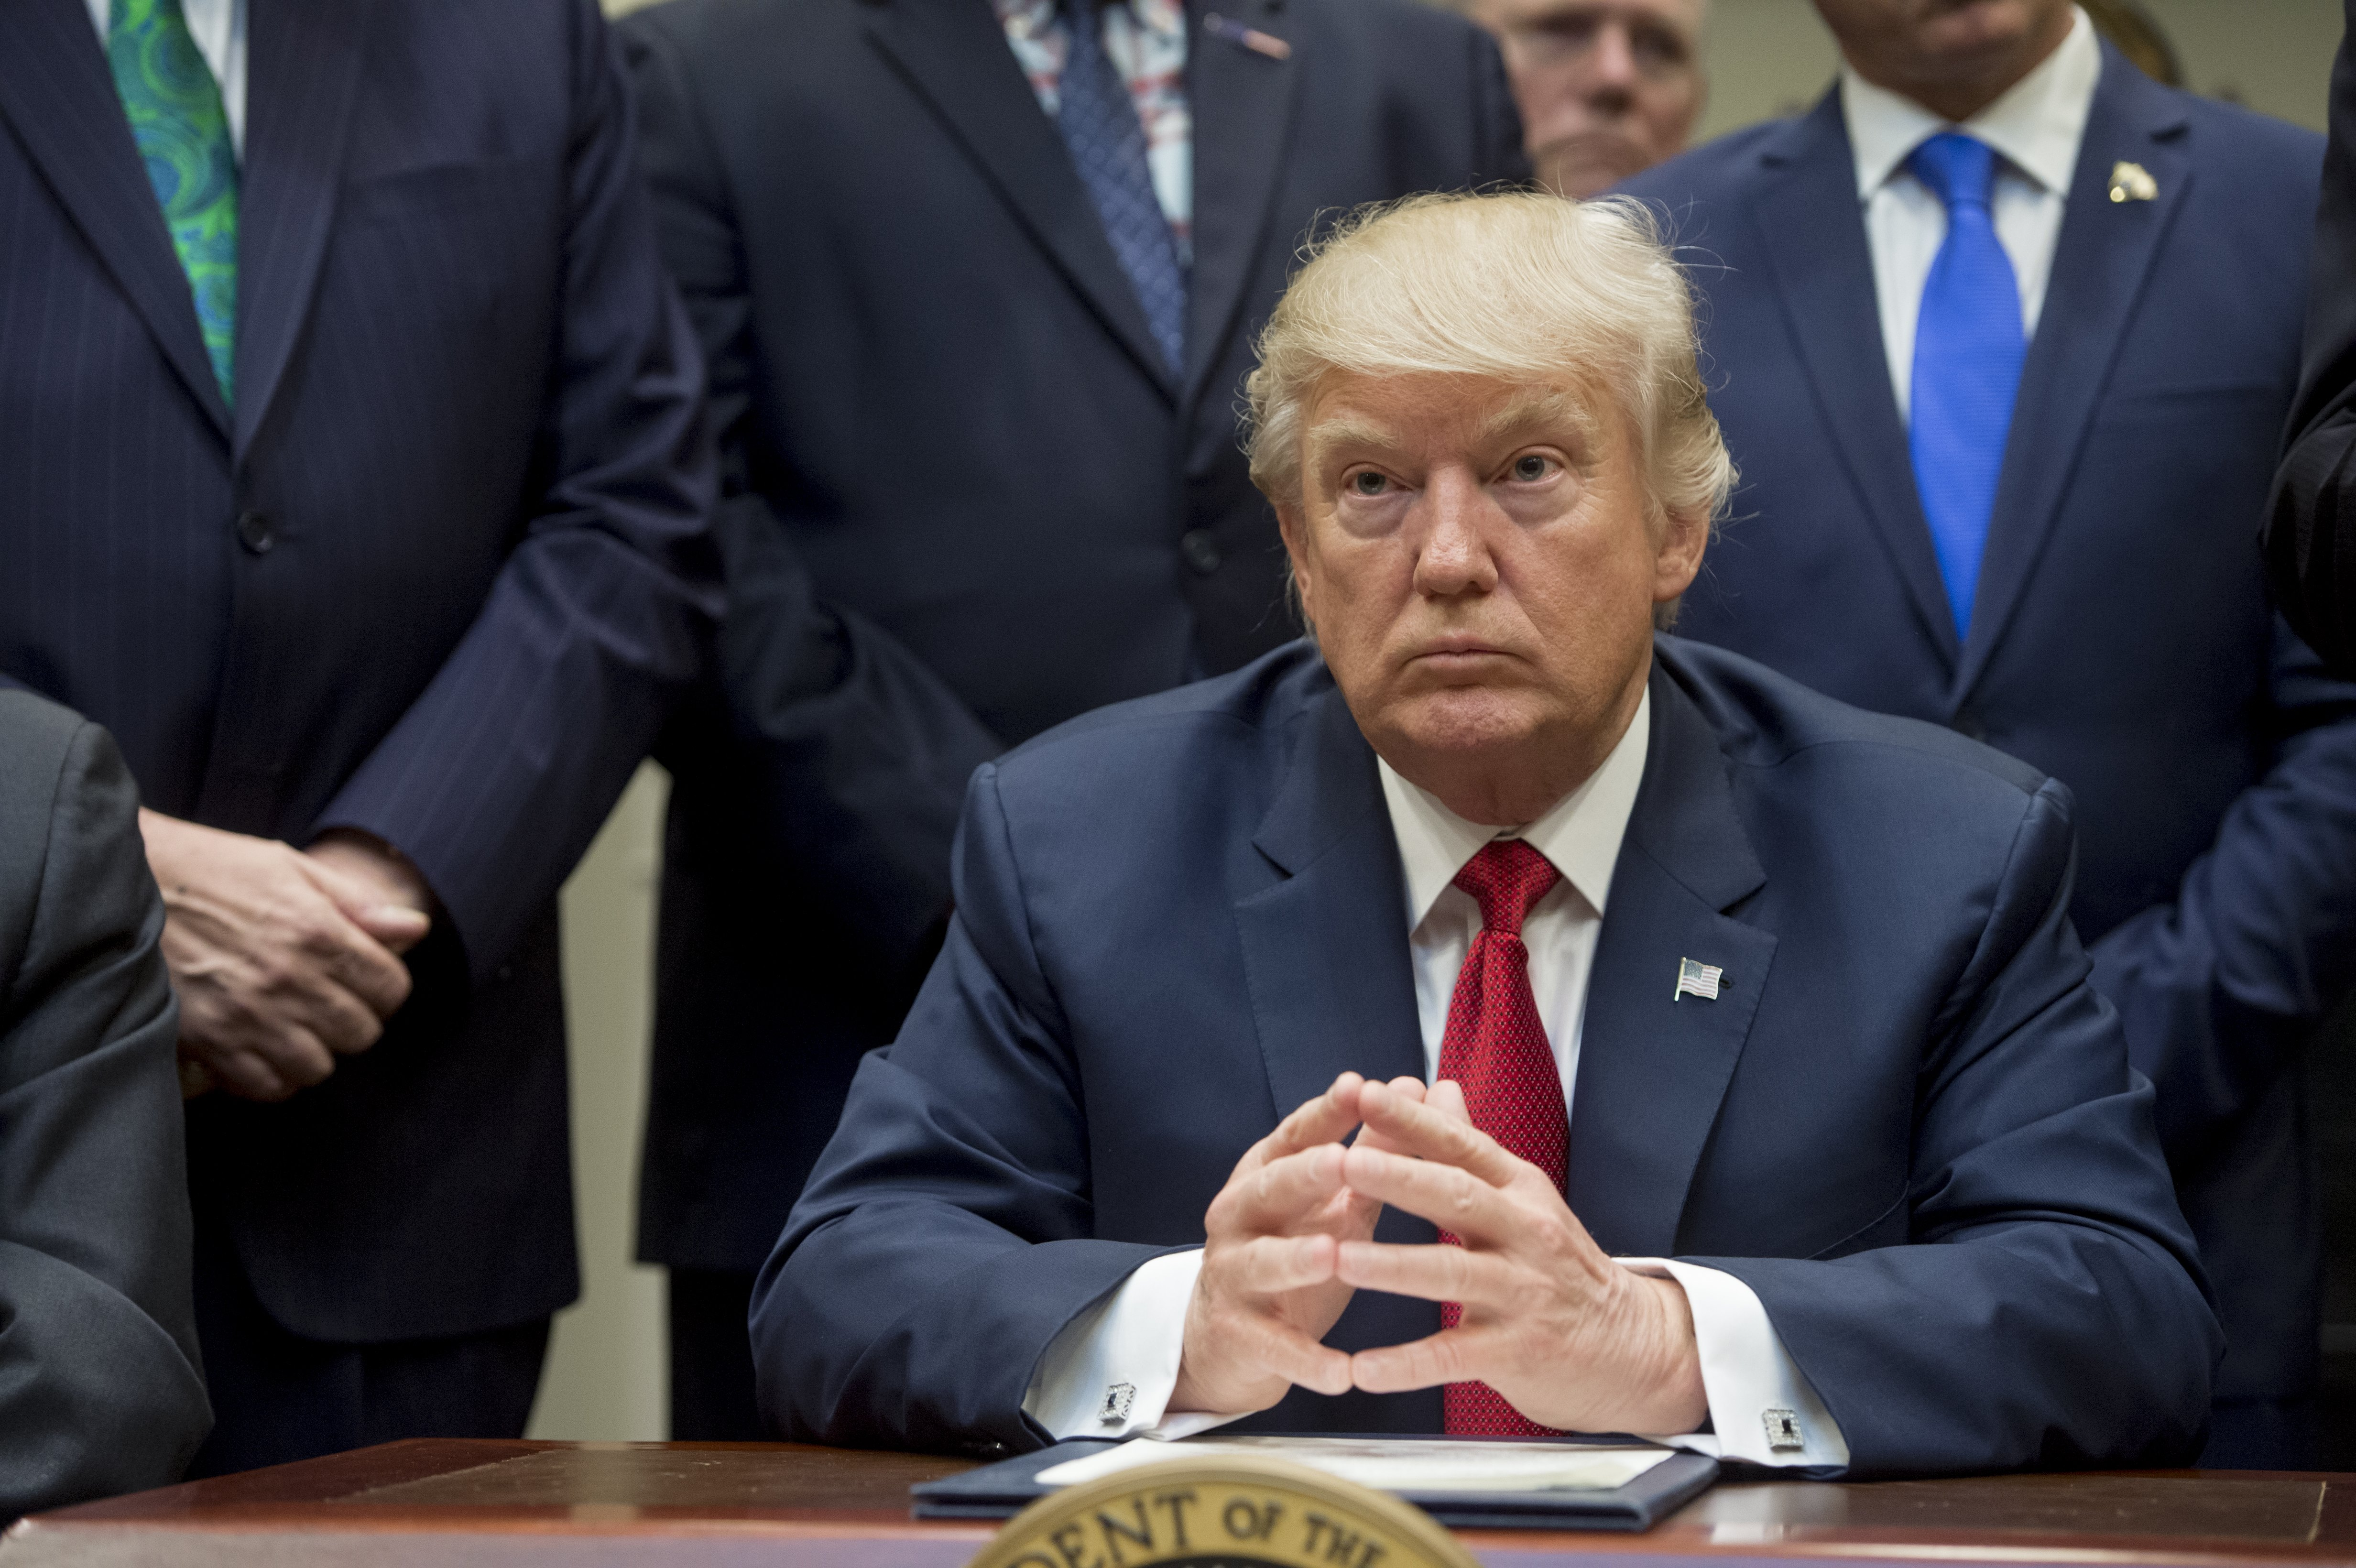 Trump Calls Supreme Court Ruling on Travel Ban a 'Clear Victory'